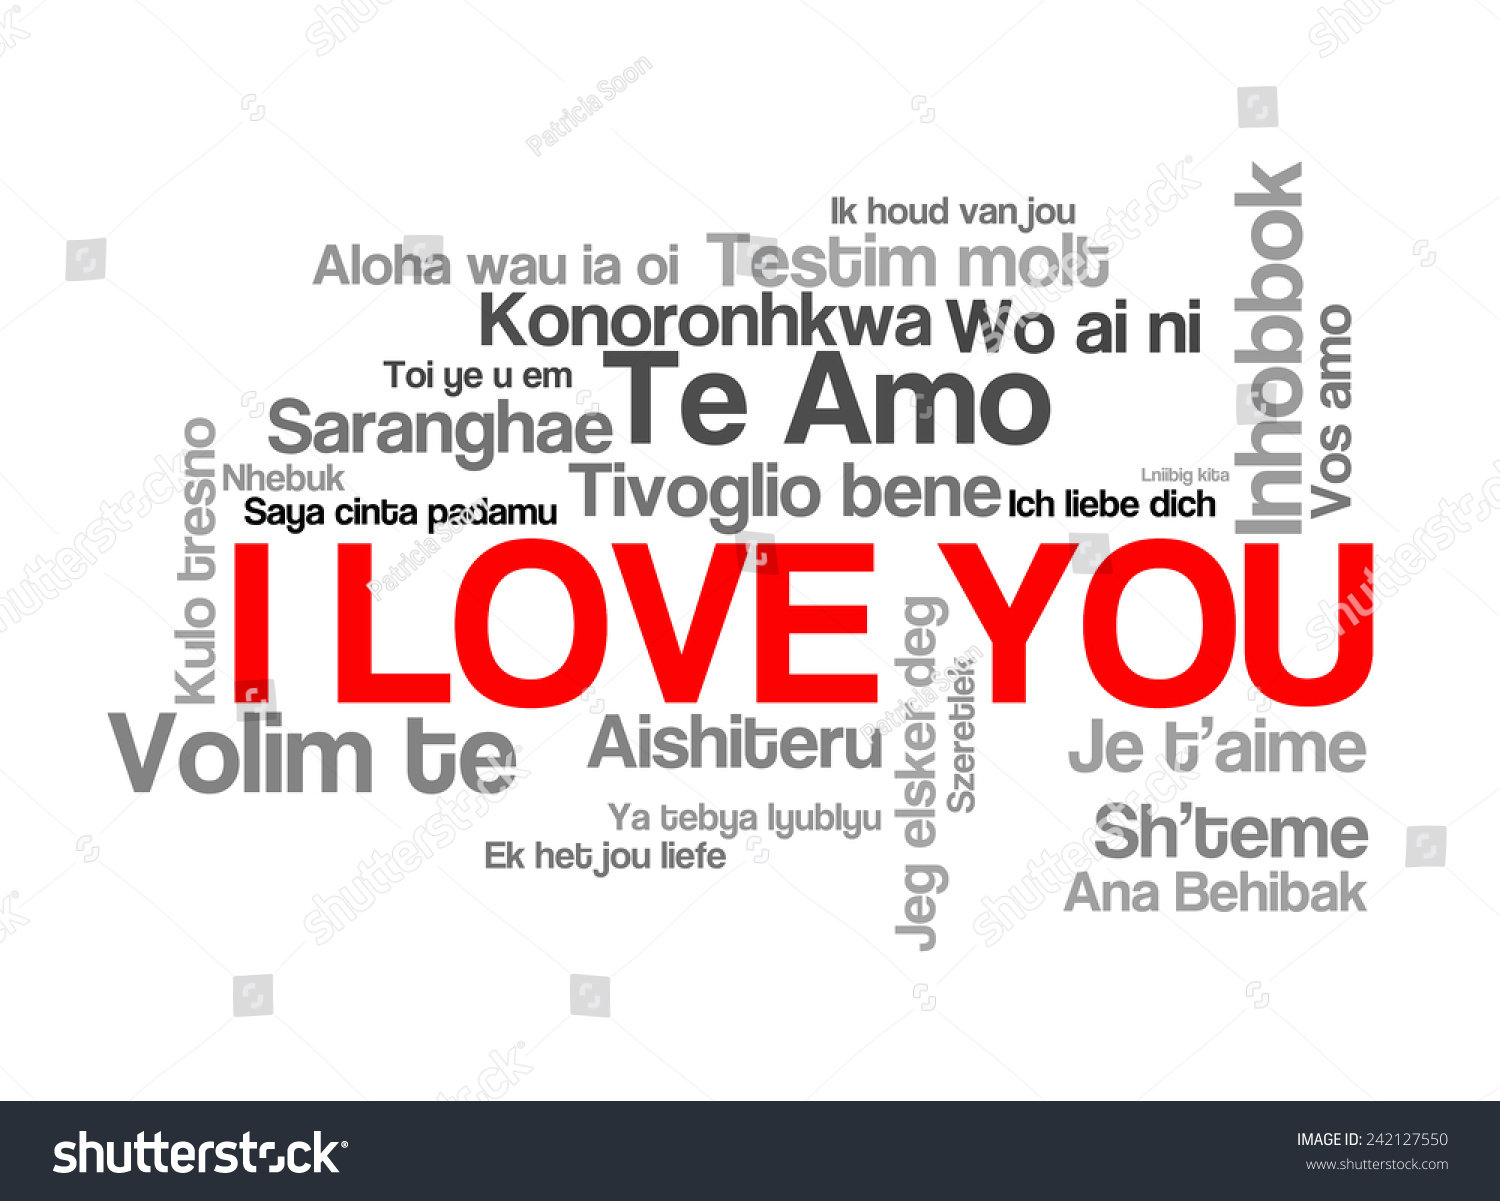 Love words i love you different stock illustration 242127550 love words i love you different stock illustration 242127550 shutterstock thecheapjerseys Images